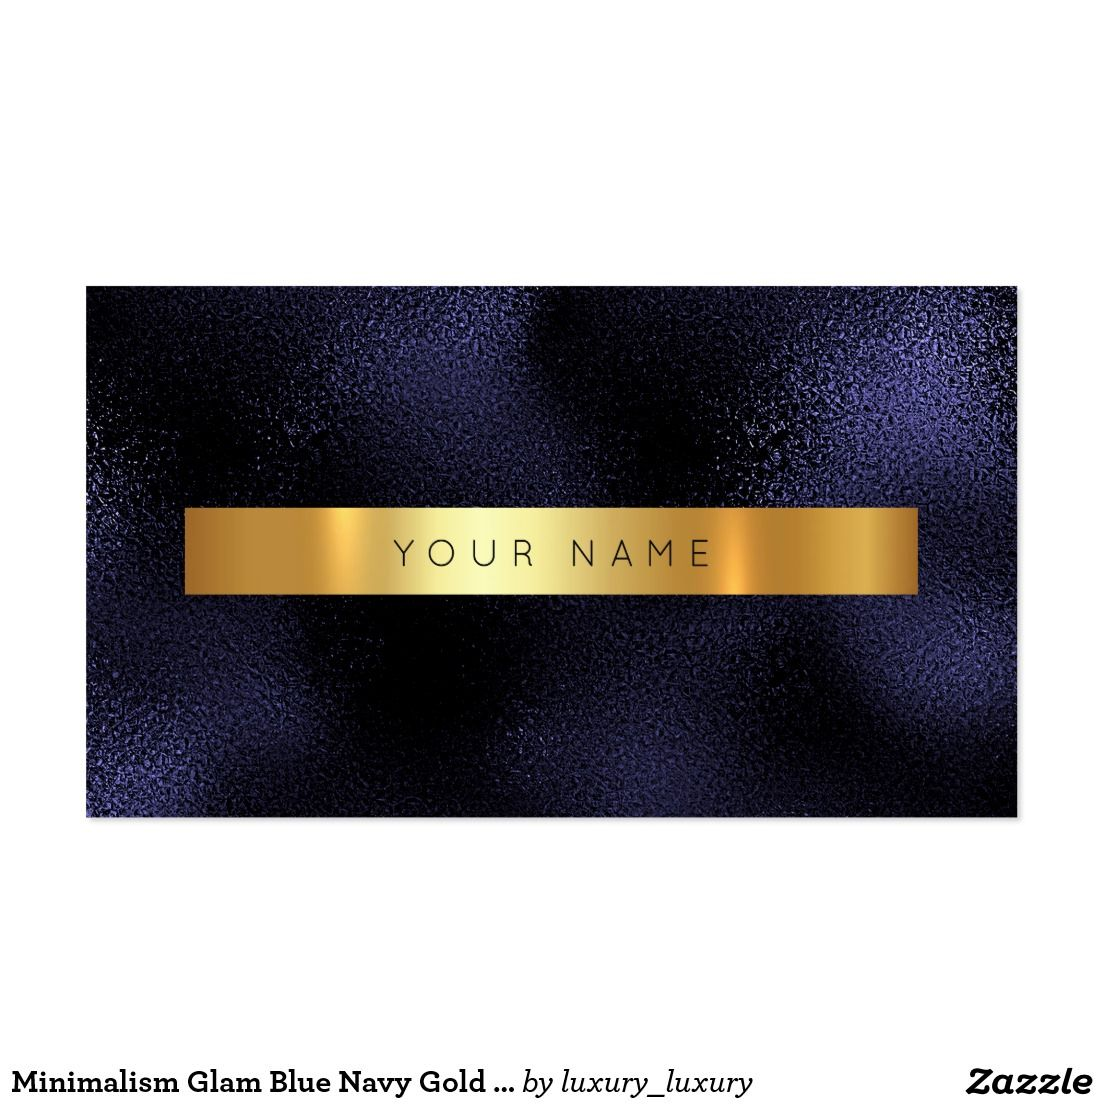 Minimalism Glam Blue Navy Gold Metallic Vip Business Card ...